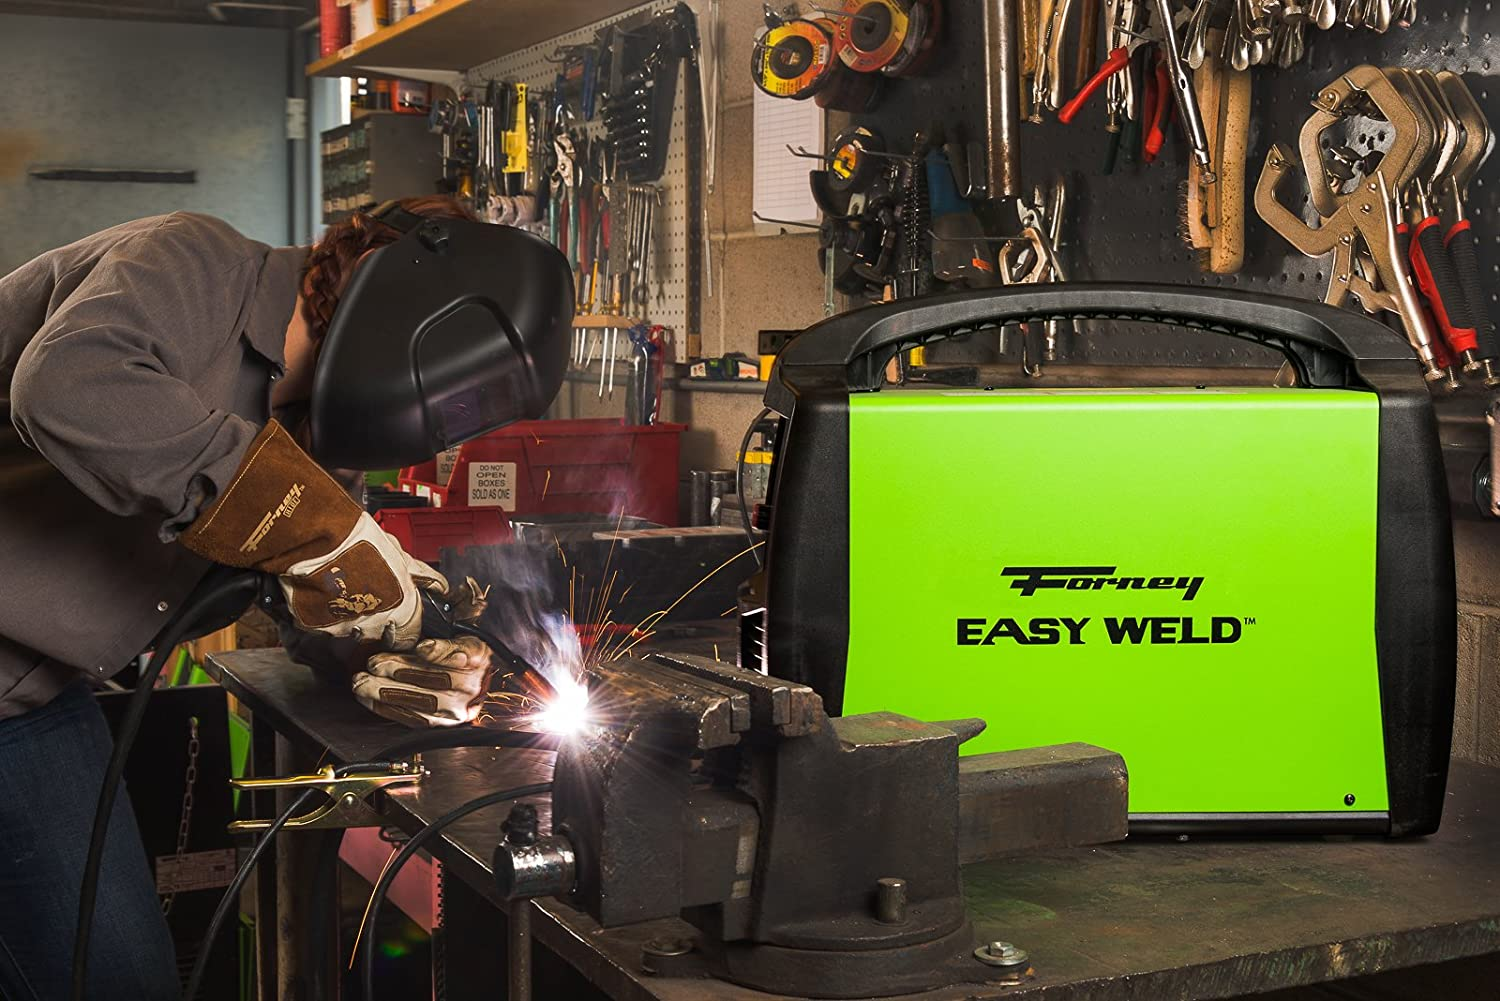 Forney Easy Weld 299 125fc Flux Core Welder 120 Volt 125 Amp Hobart Power Plug 230 Male Plugpin Type 50 Amps Model